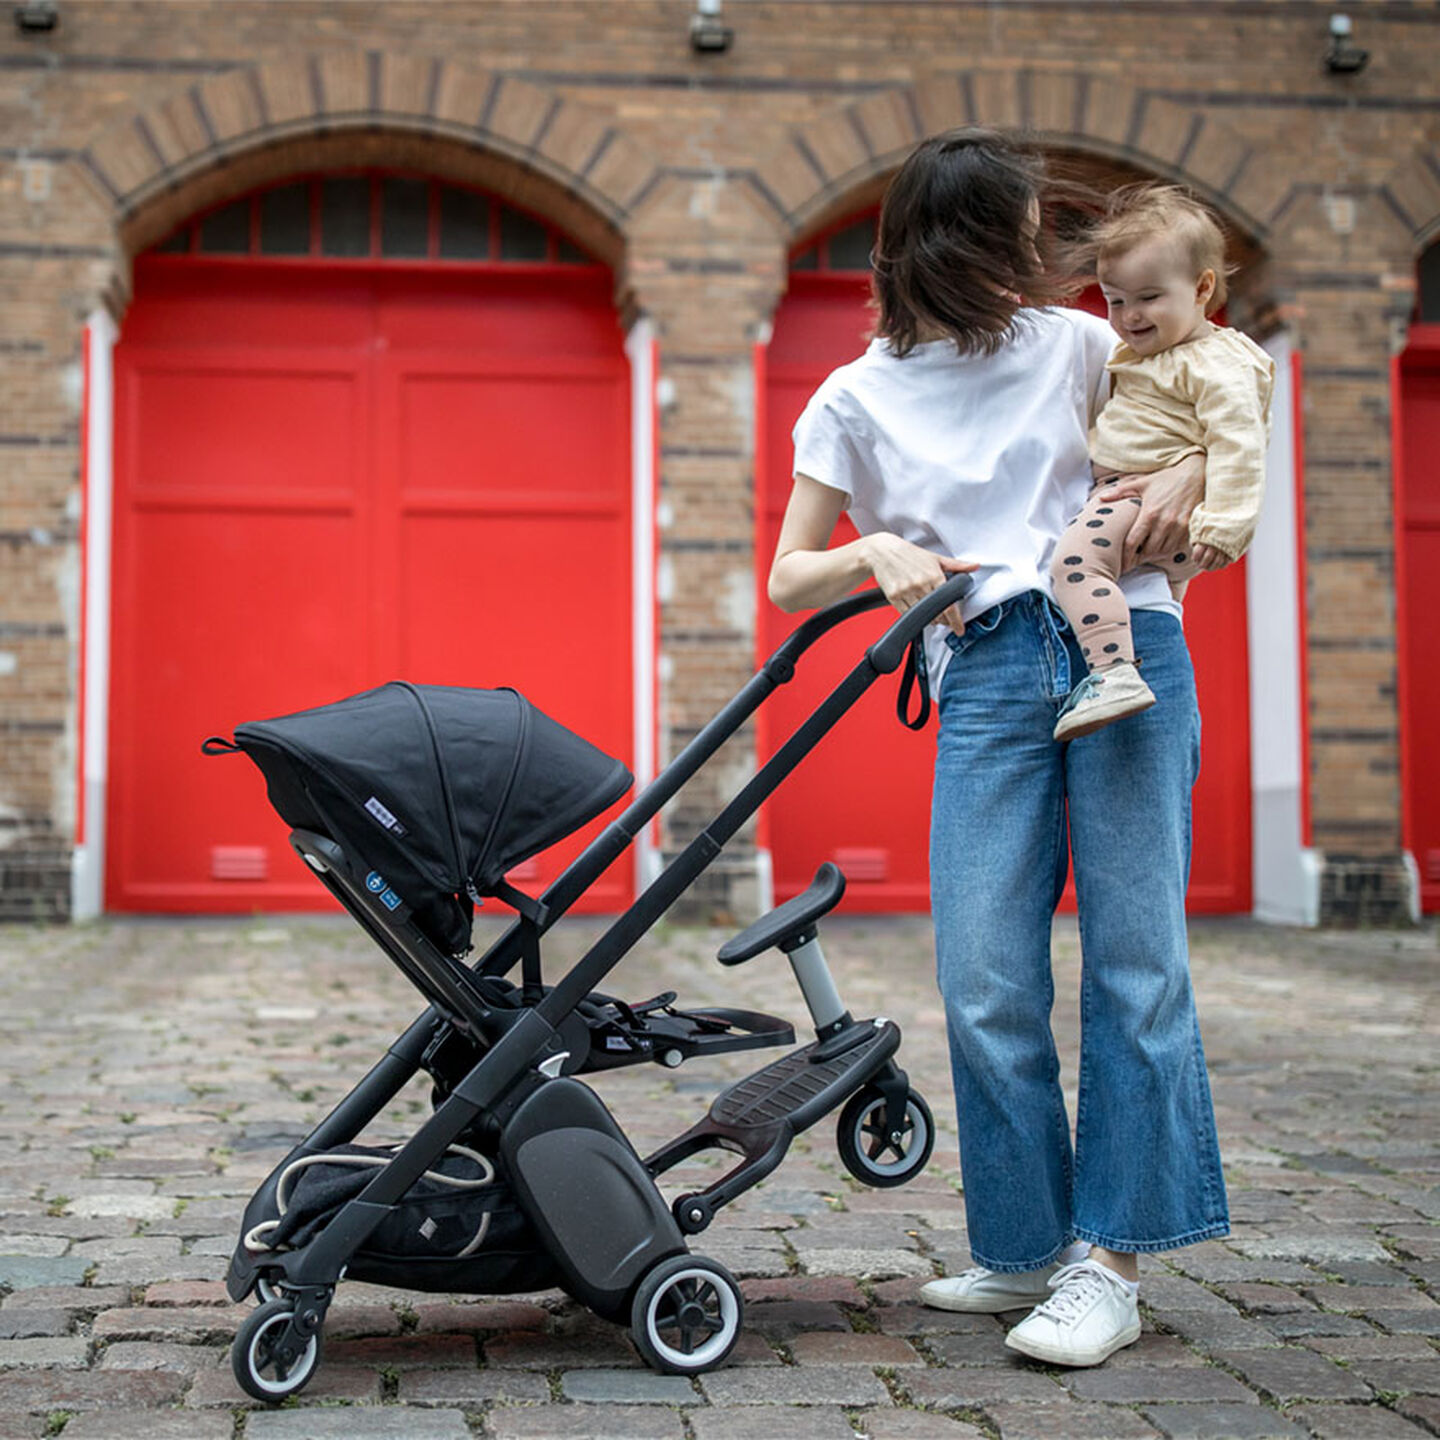 Woman with stroller holding child